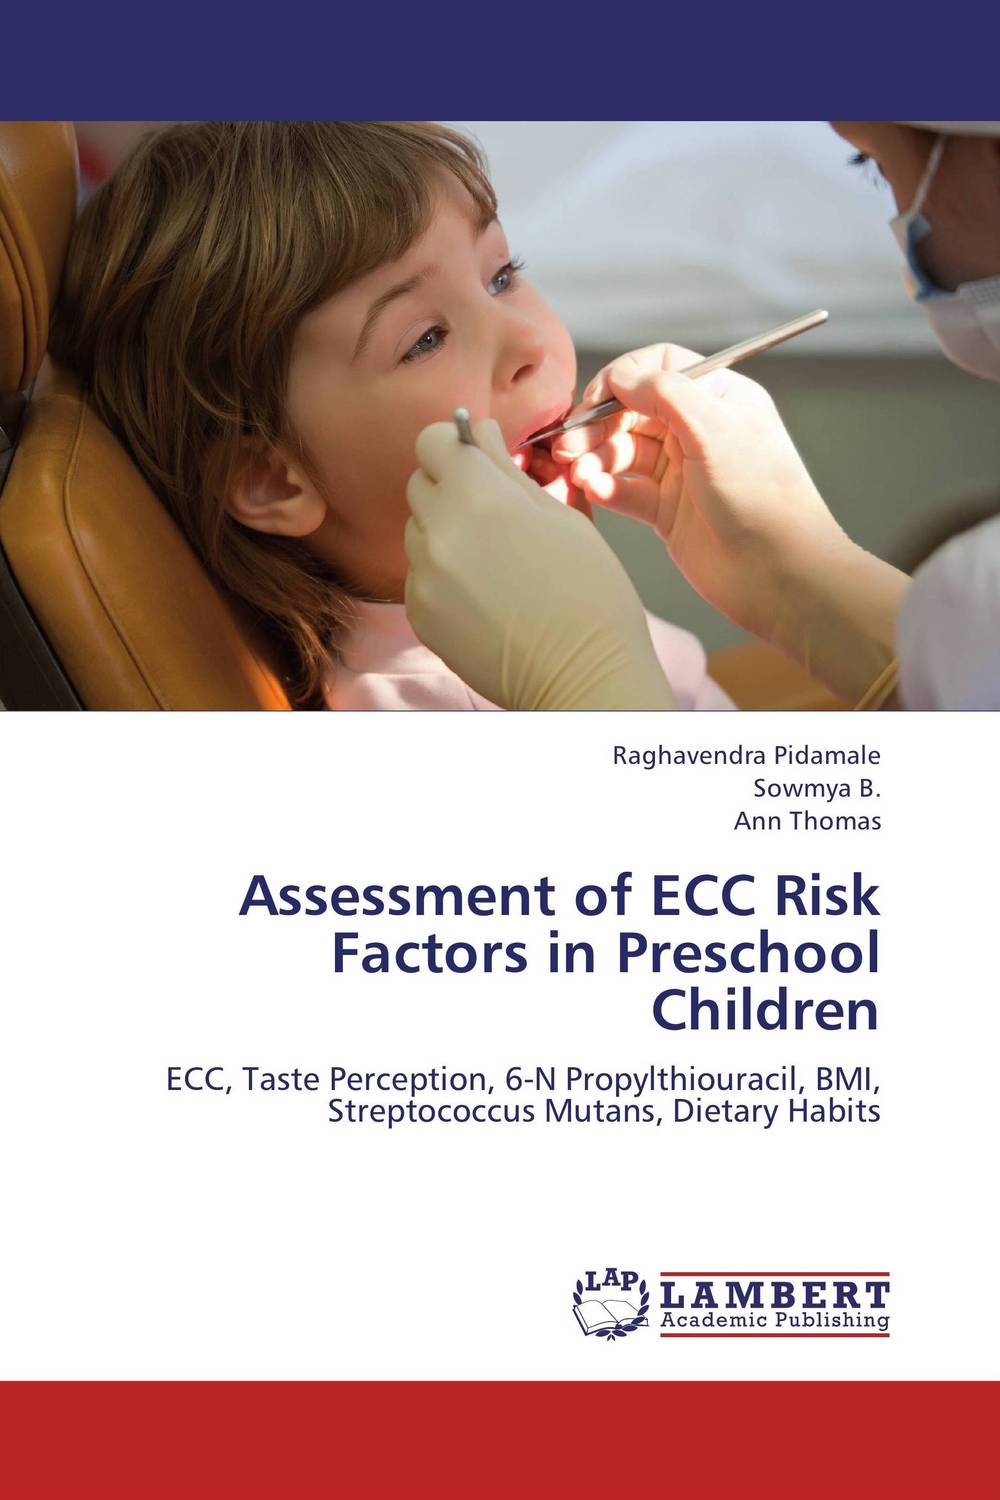 Assessment of ECC Risk Factors in Preschool Children abo and genetic risk factors associated with venous thrombosis